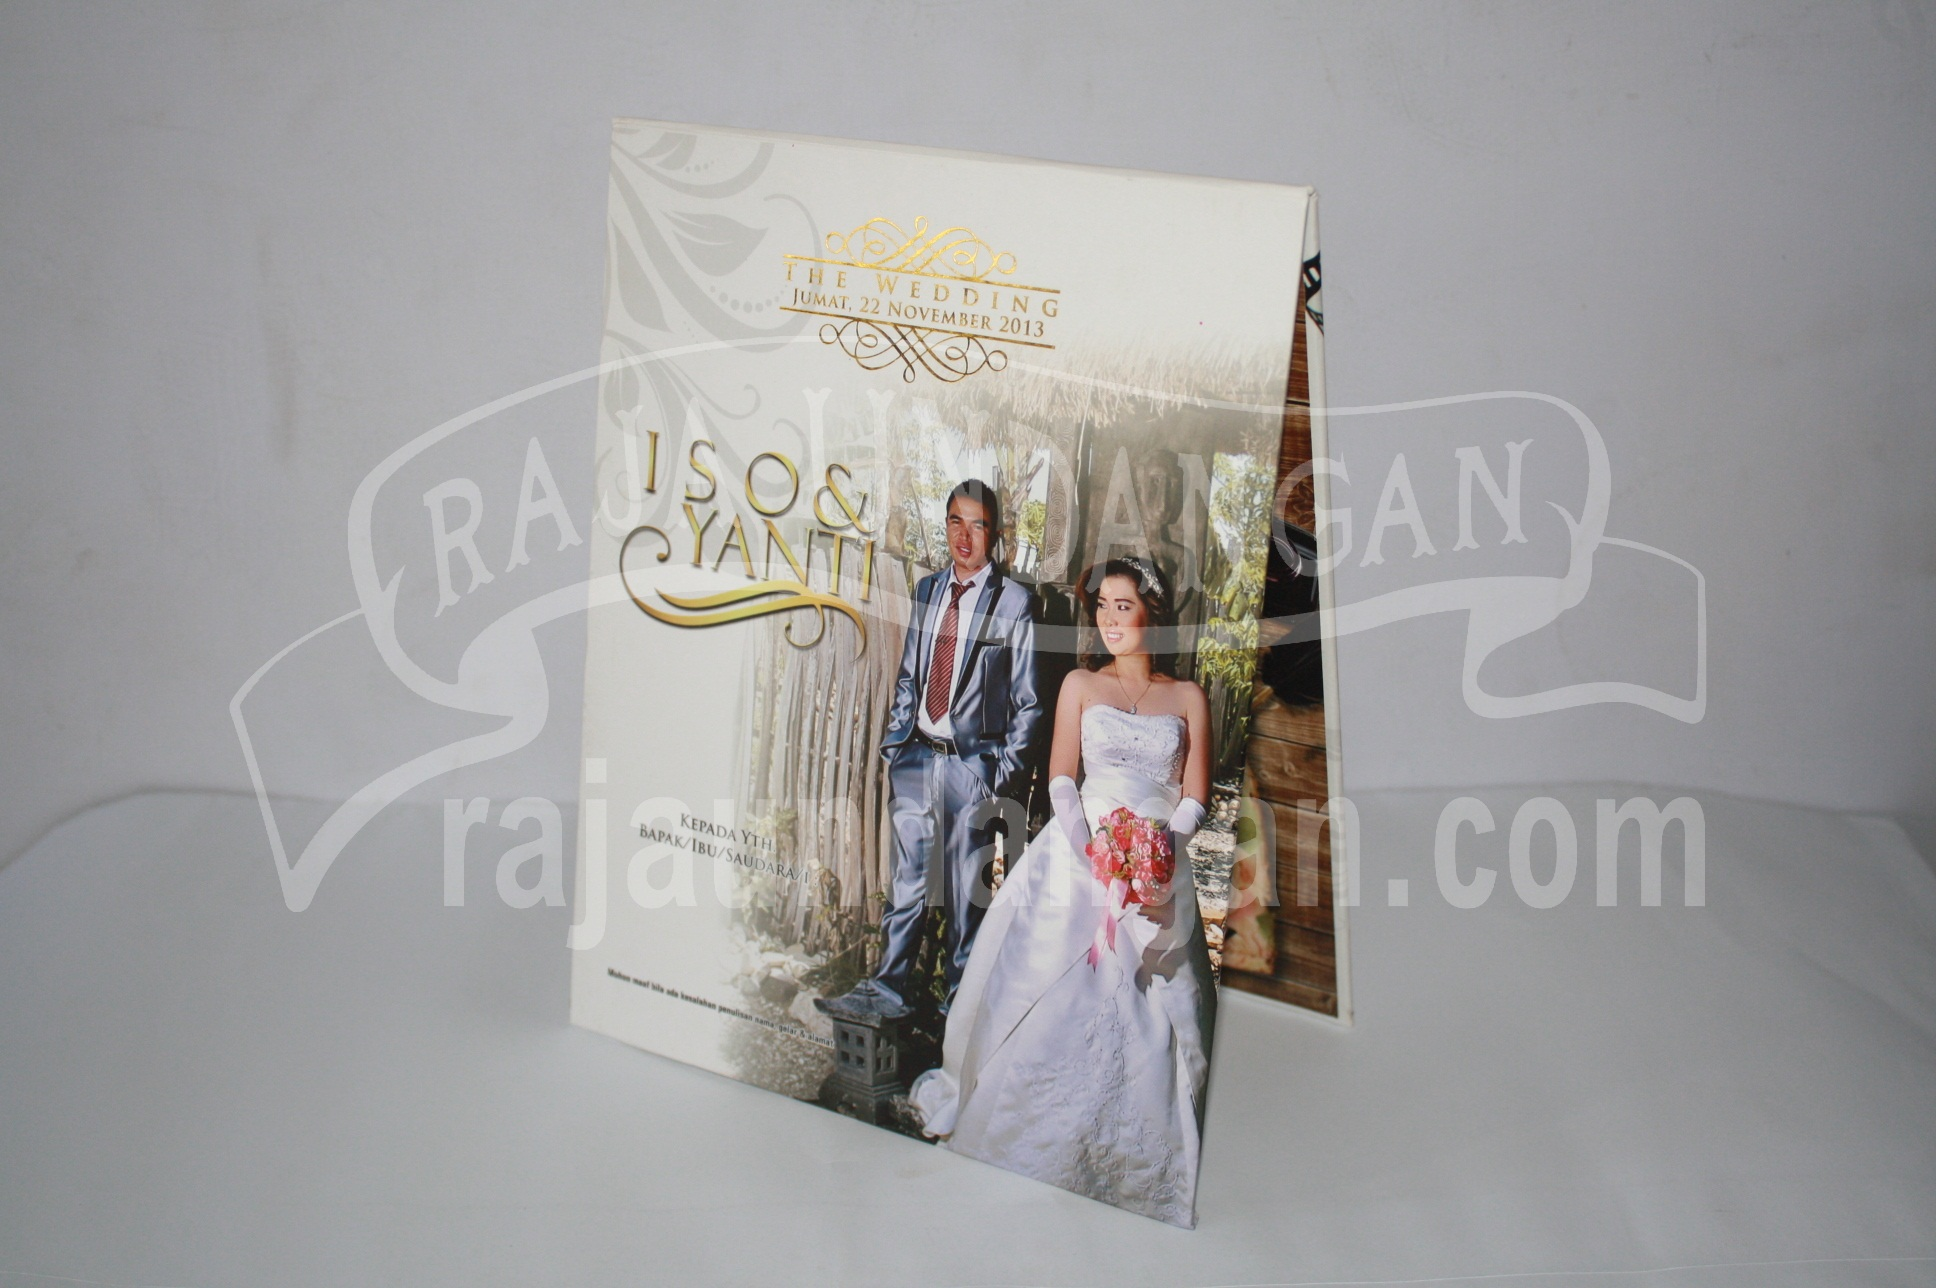 Undangan Pernikahan Hardcover Pop Up Iso dan Yanti EDC 451 - Percetakan Wedding Invitations Eksklusif di Dukuh Setro